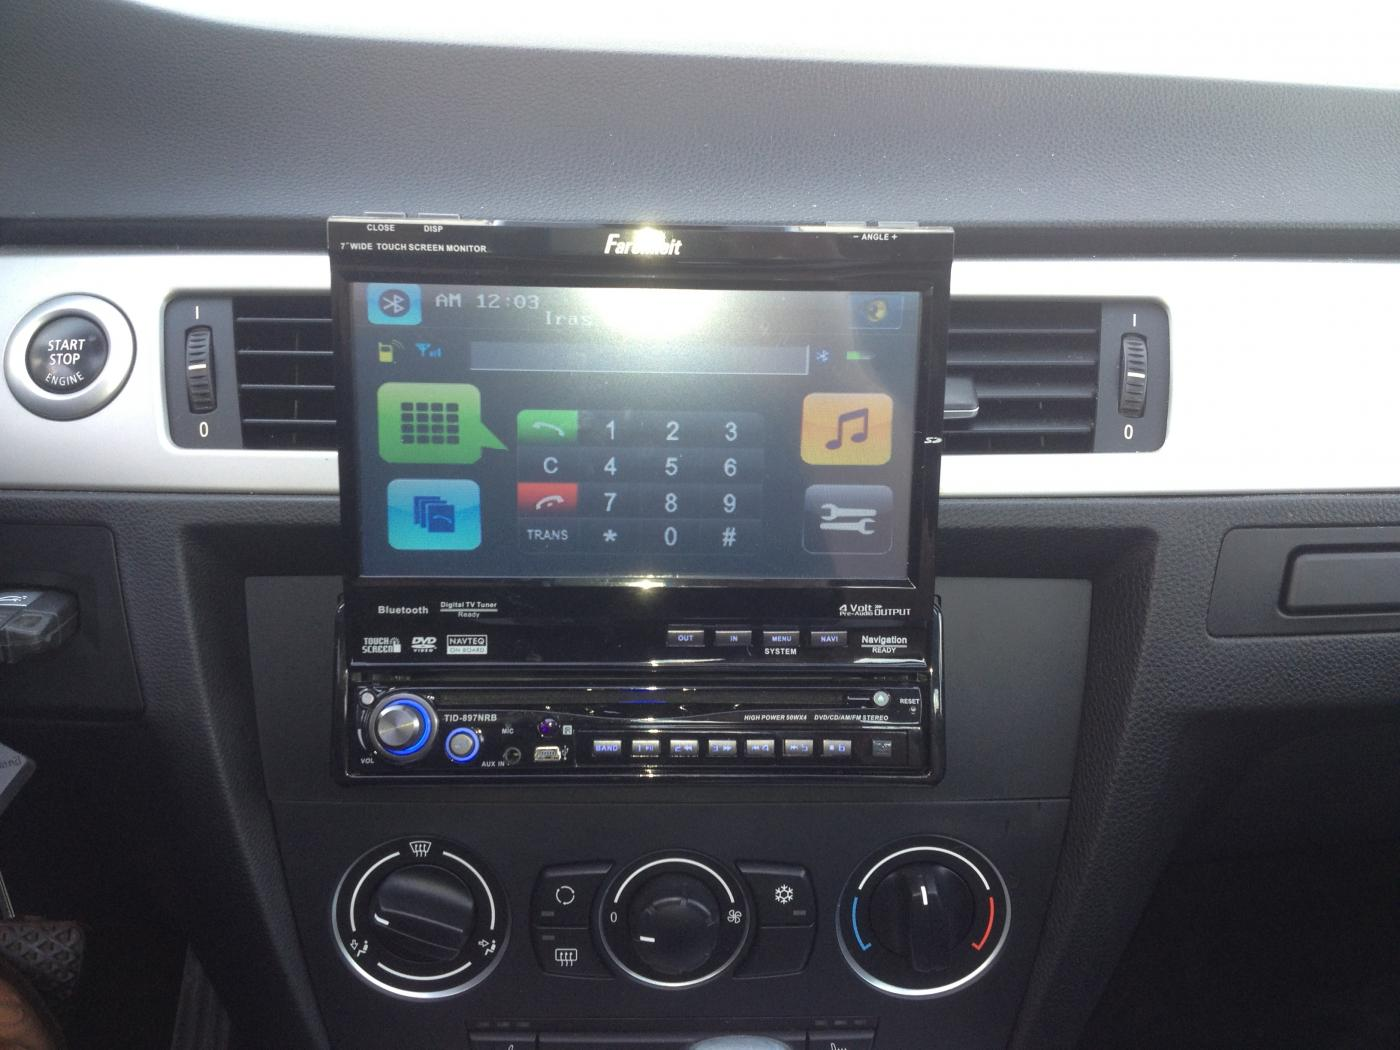 e90 head unit replacement. Black Bedroom Furniture Sets. Home Design Ideas